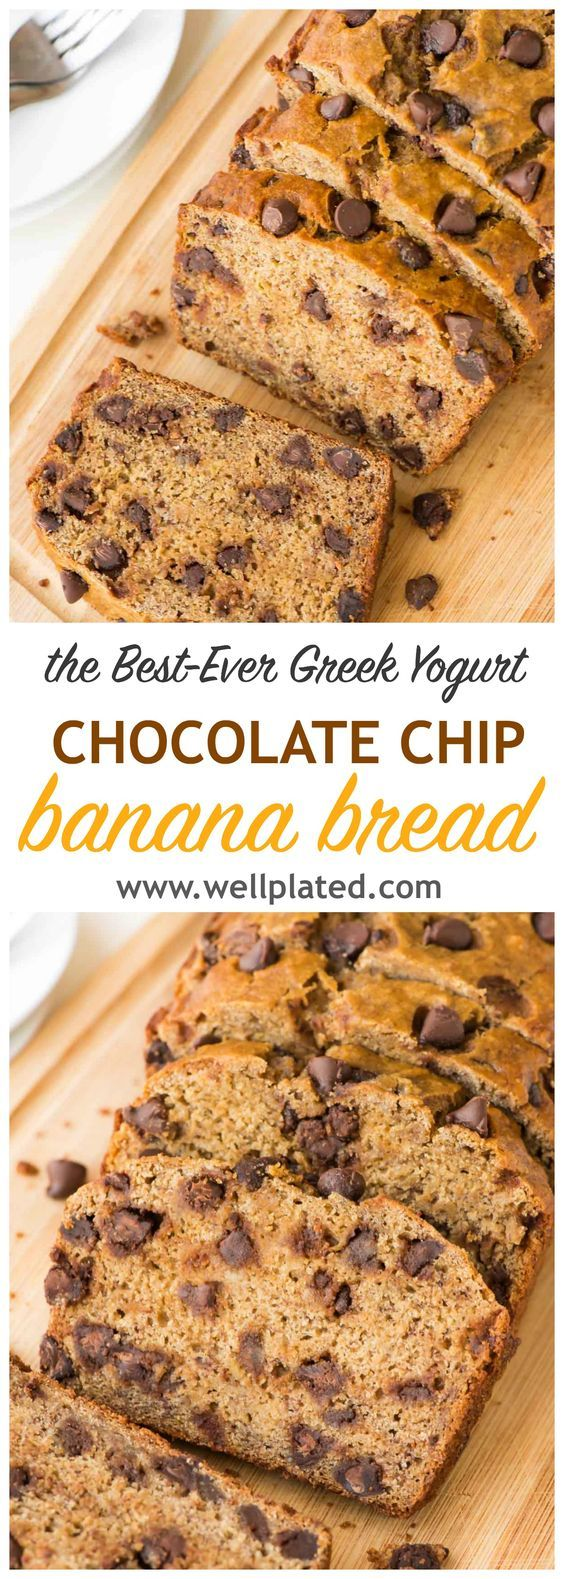 Fluffy, delicious healthy banana bread recipe made with Greek yogurt to keep it moist and chocolate chips for a little indulgence. EASY to make and SO GOOD. @wellplated www.wellplated.com